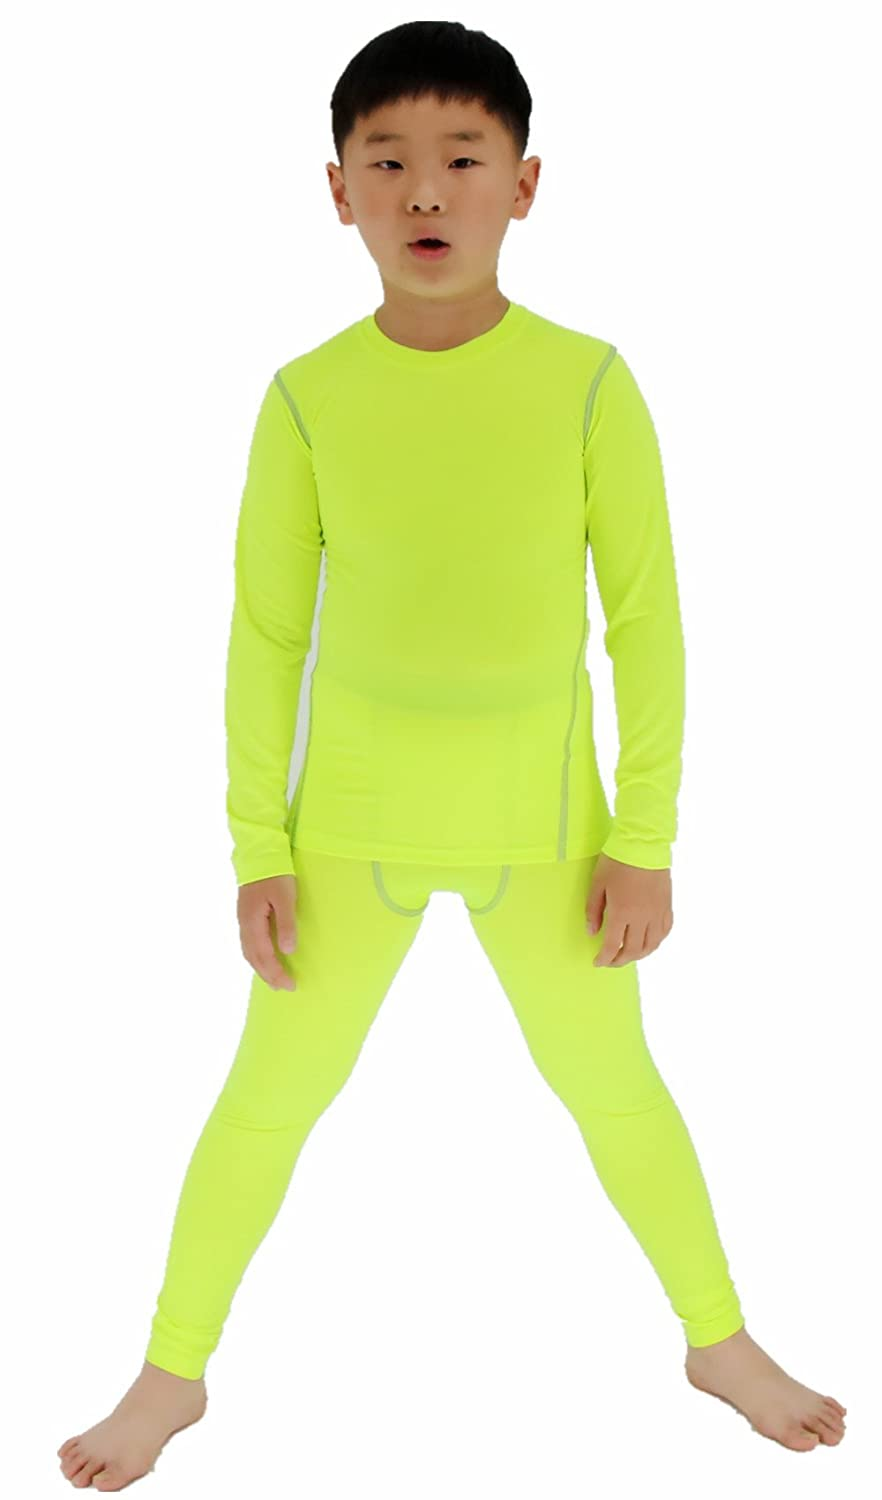 LANBAOSI Boys & Girls Long Sleeve Compression Shirts and Pant 2 Pcs Set Green) SL299-Green set-140